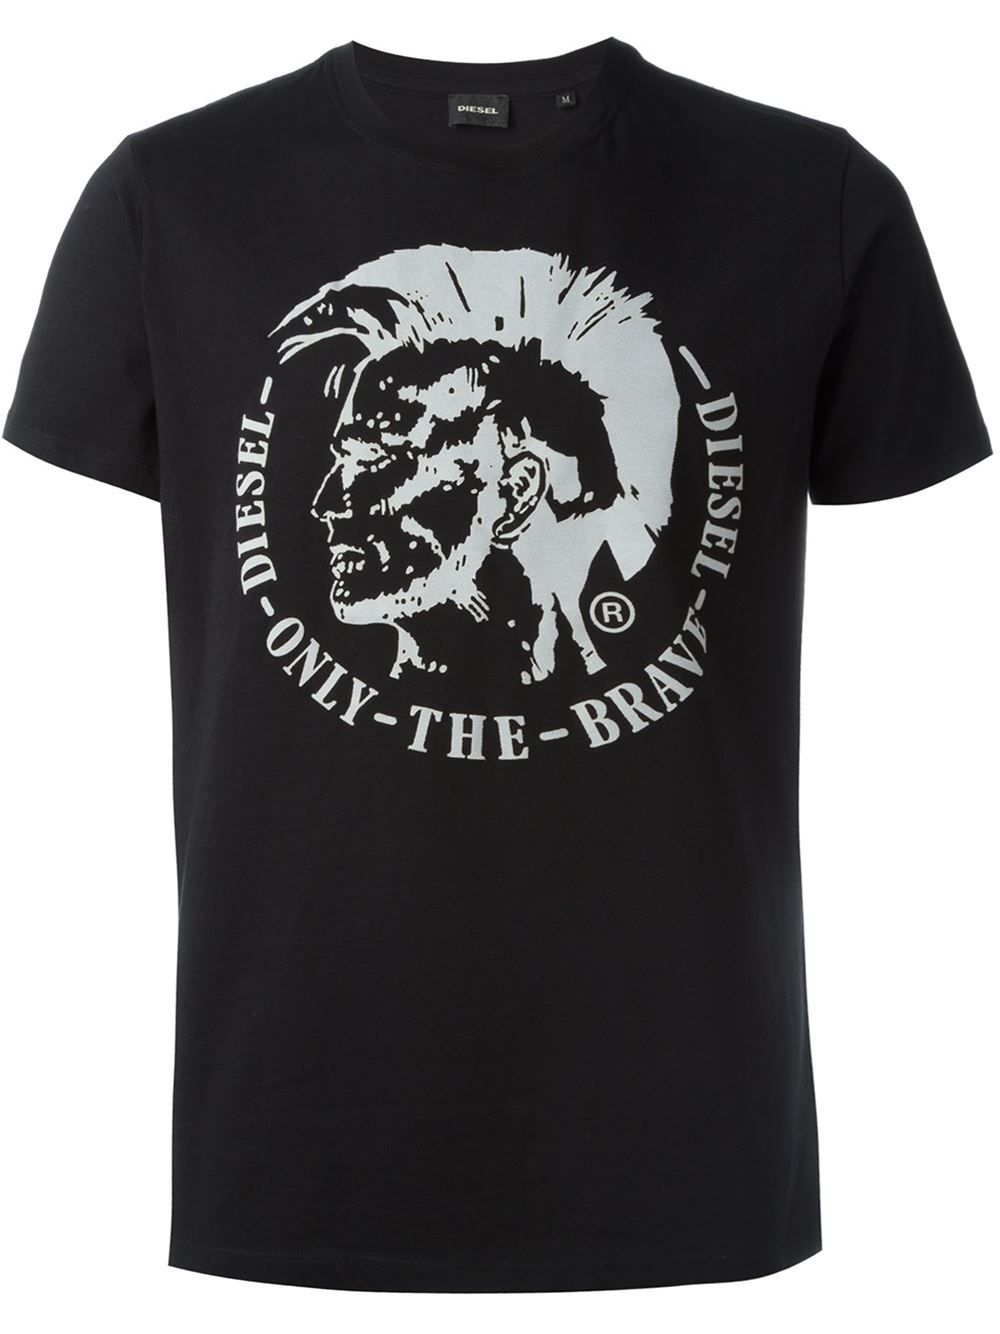 0e4f01f3c9fe31 Diesel Only The Brave Embossed T-shirt - Vitkac - Farfetch.com ...